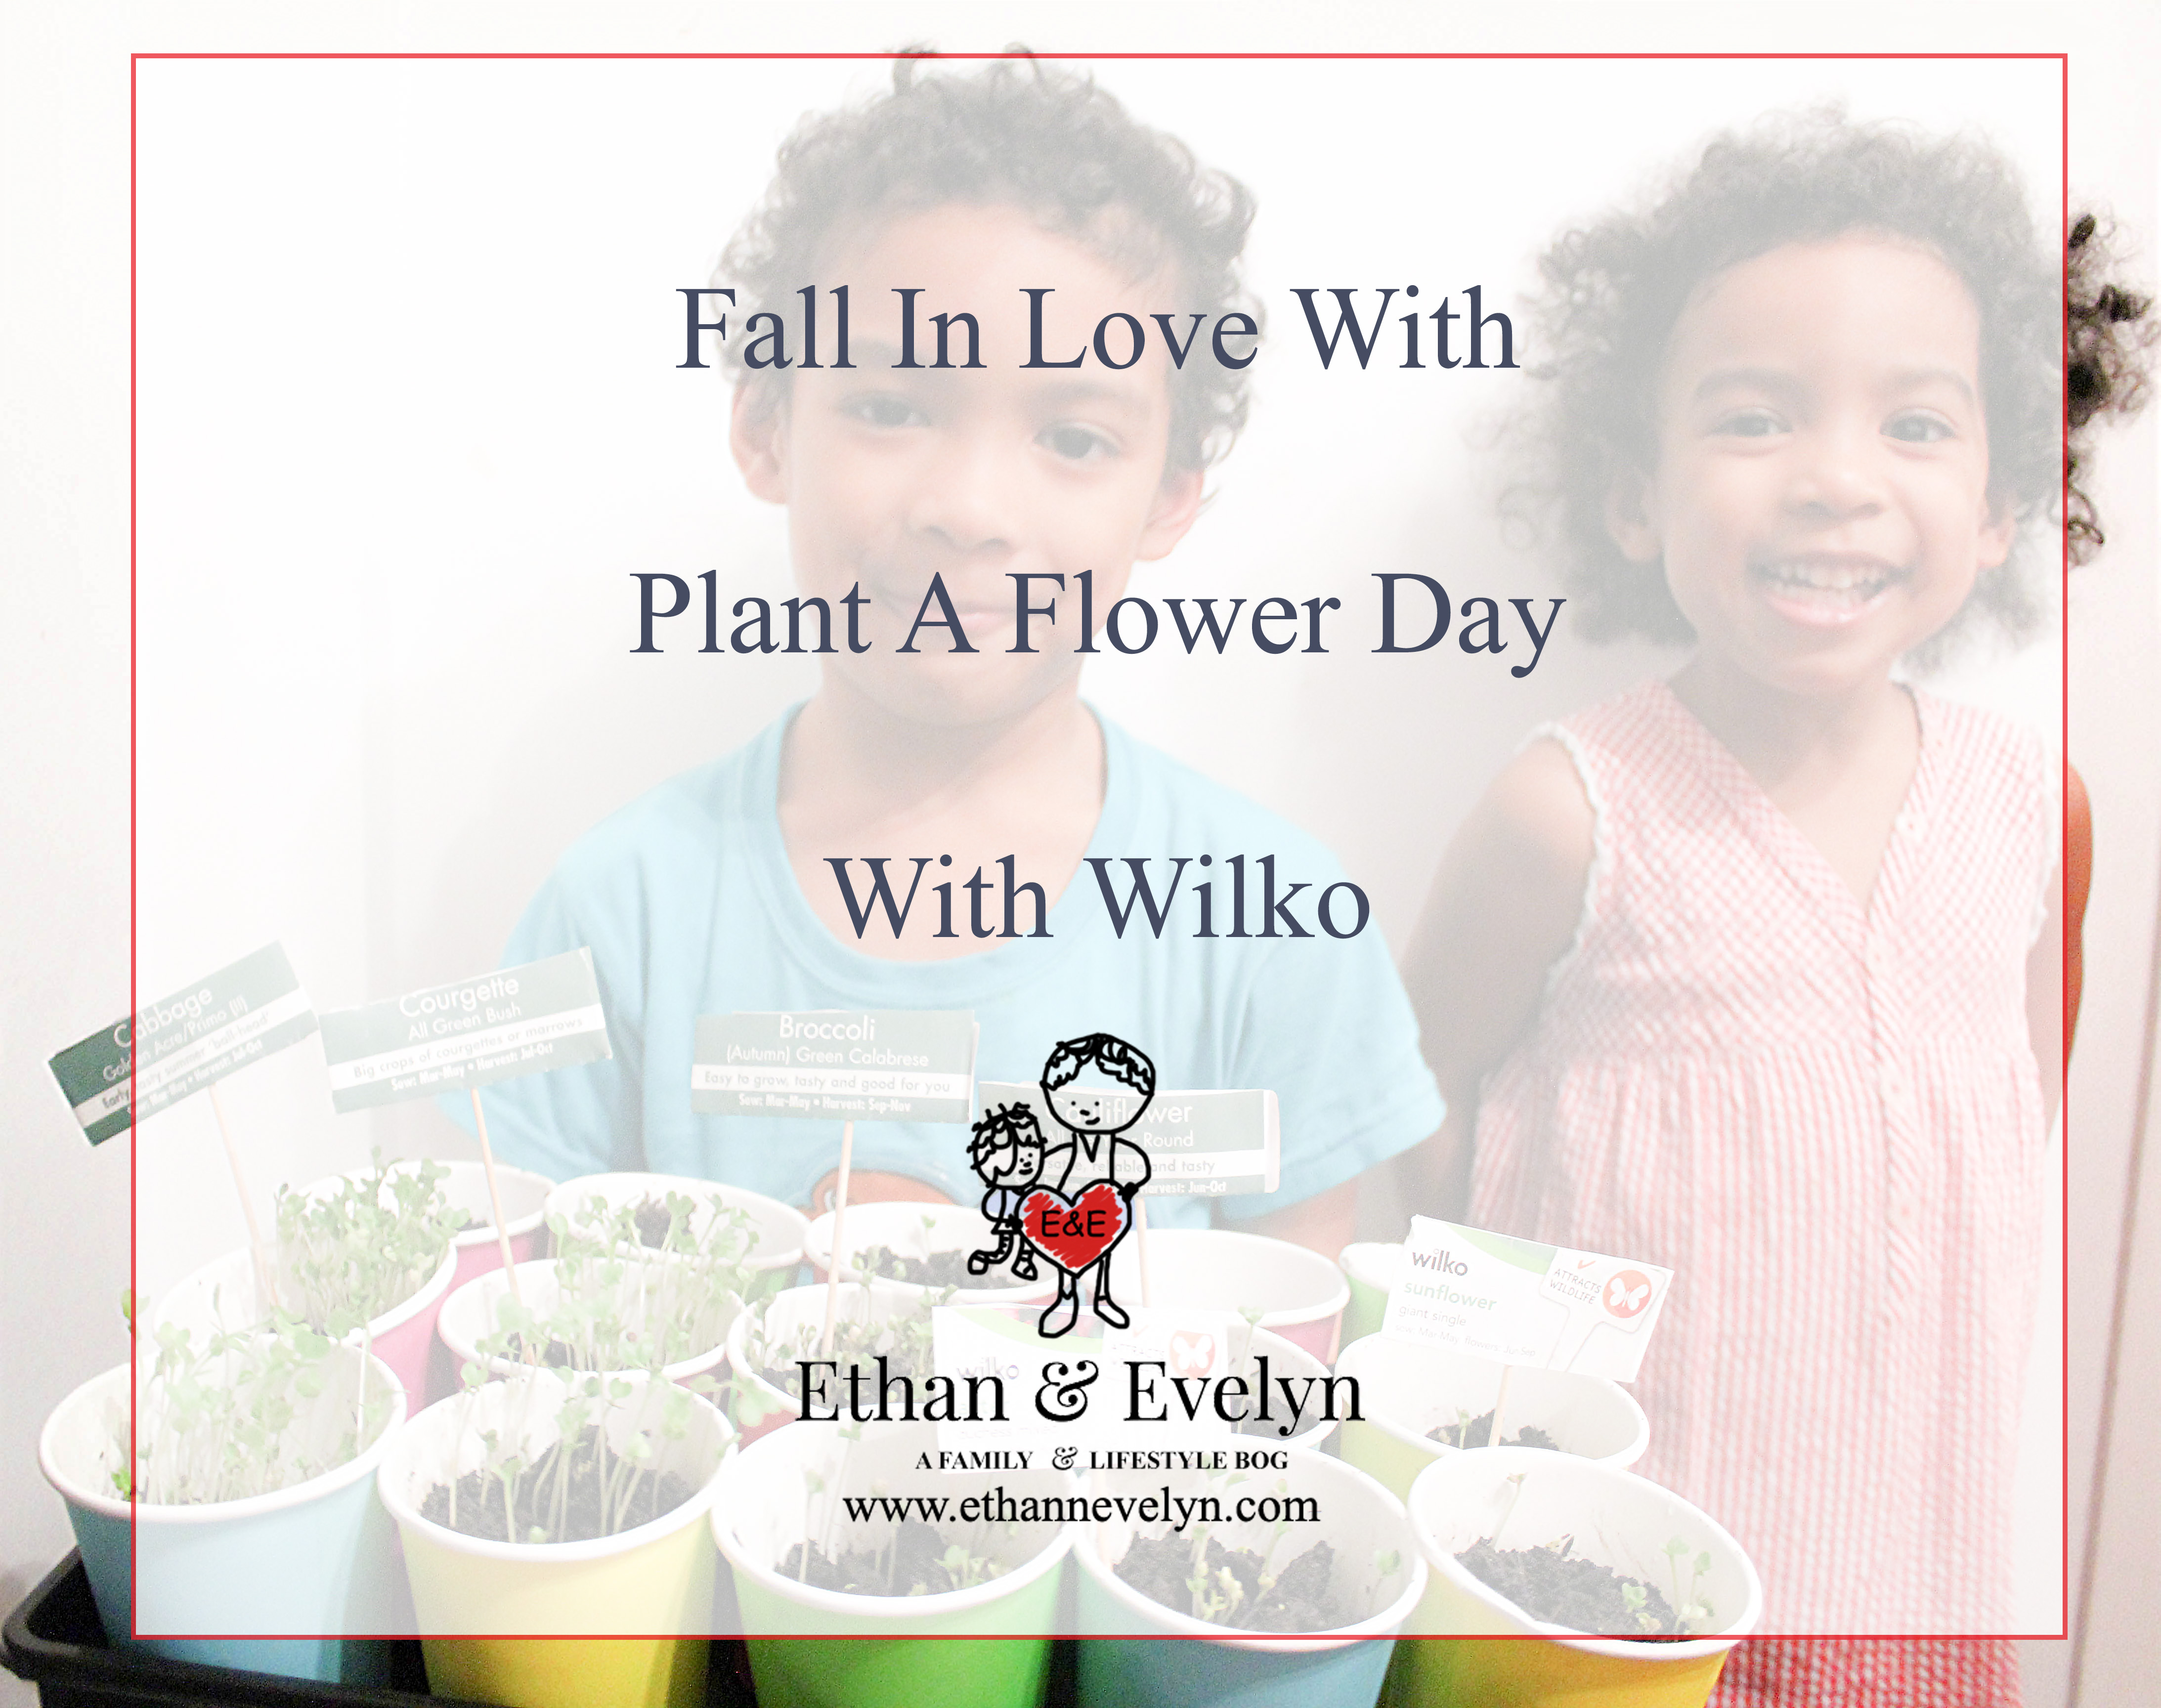 Fall In Love With Plant A Flower Day With Wilko